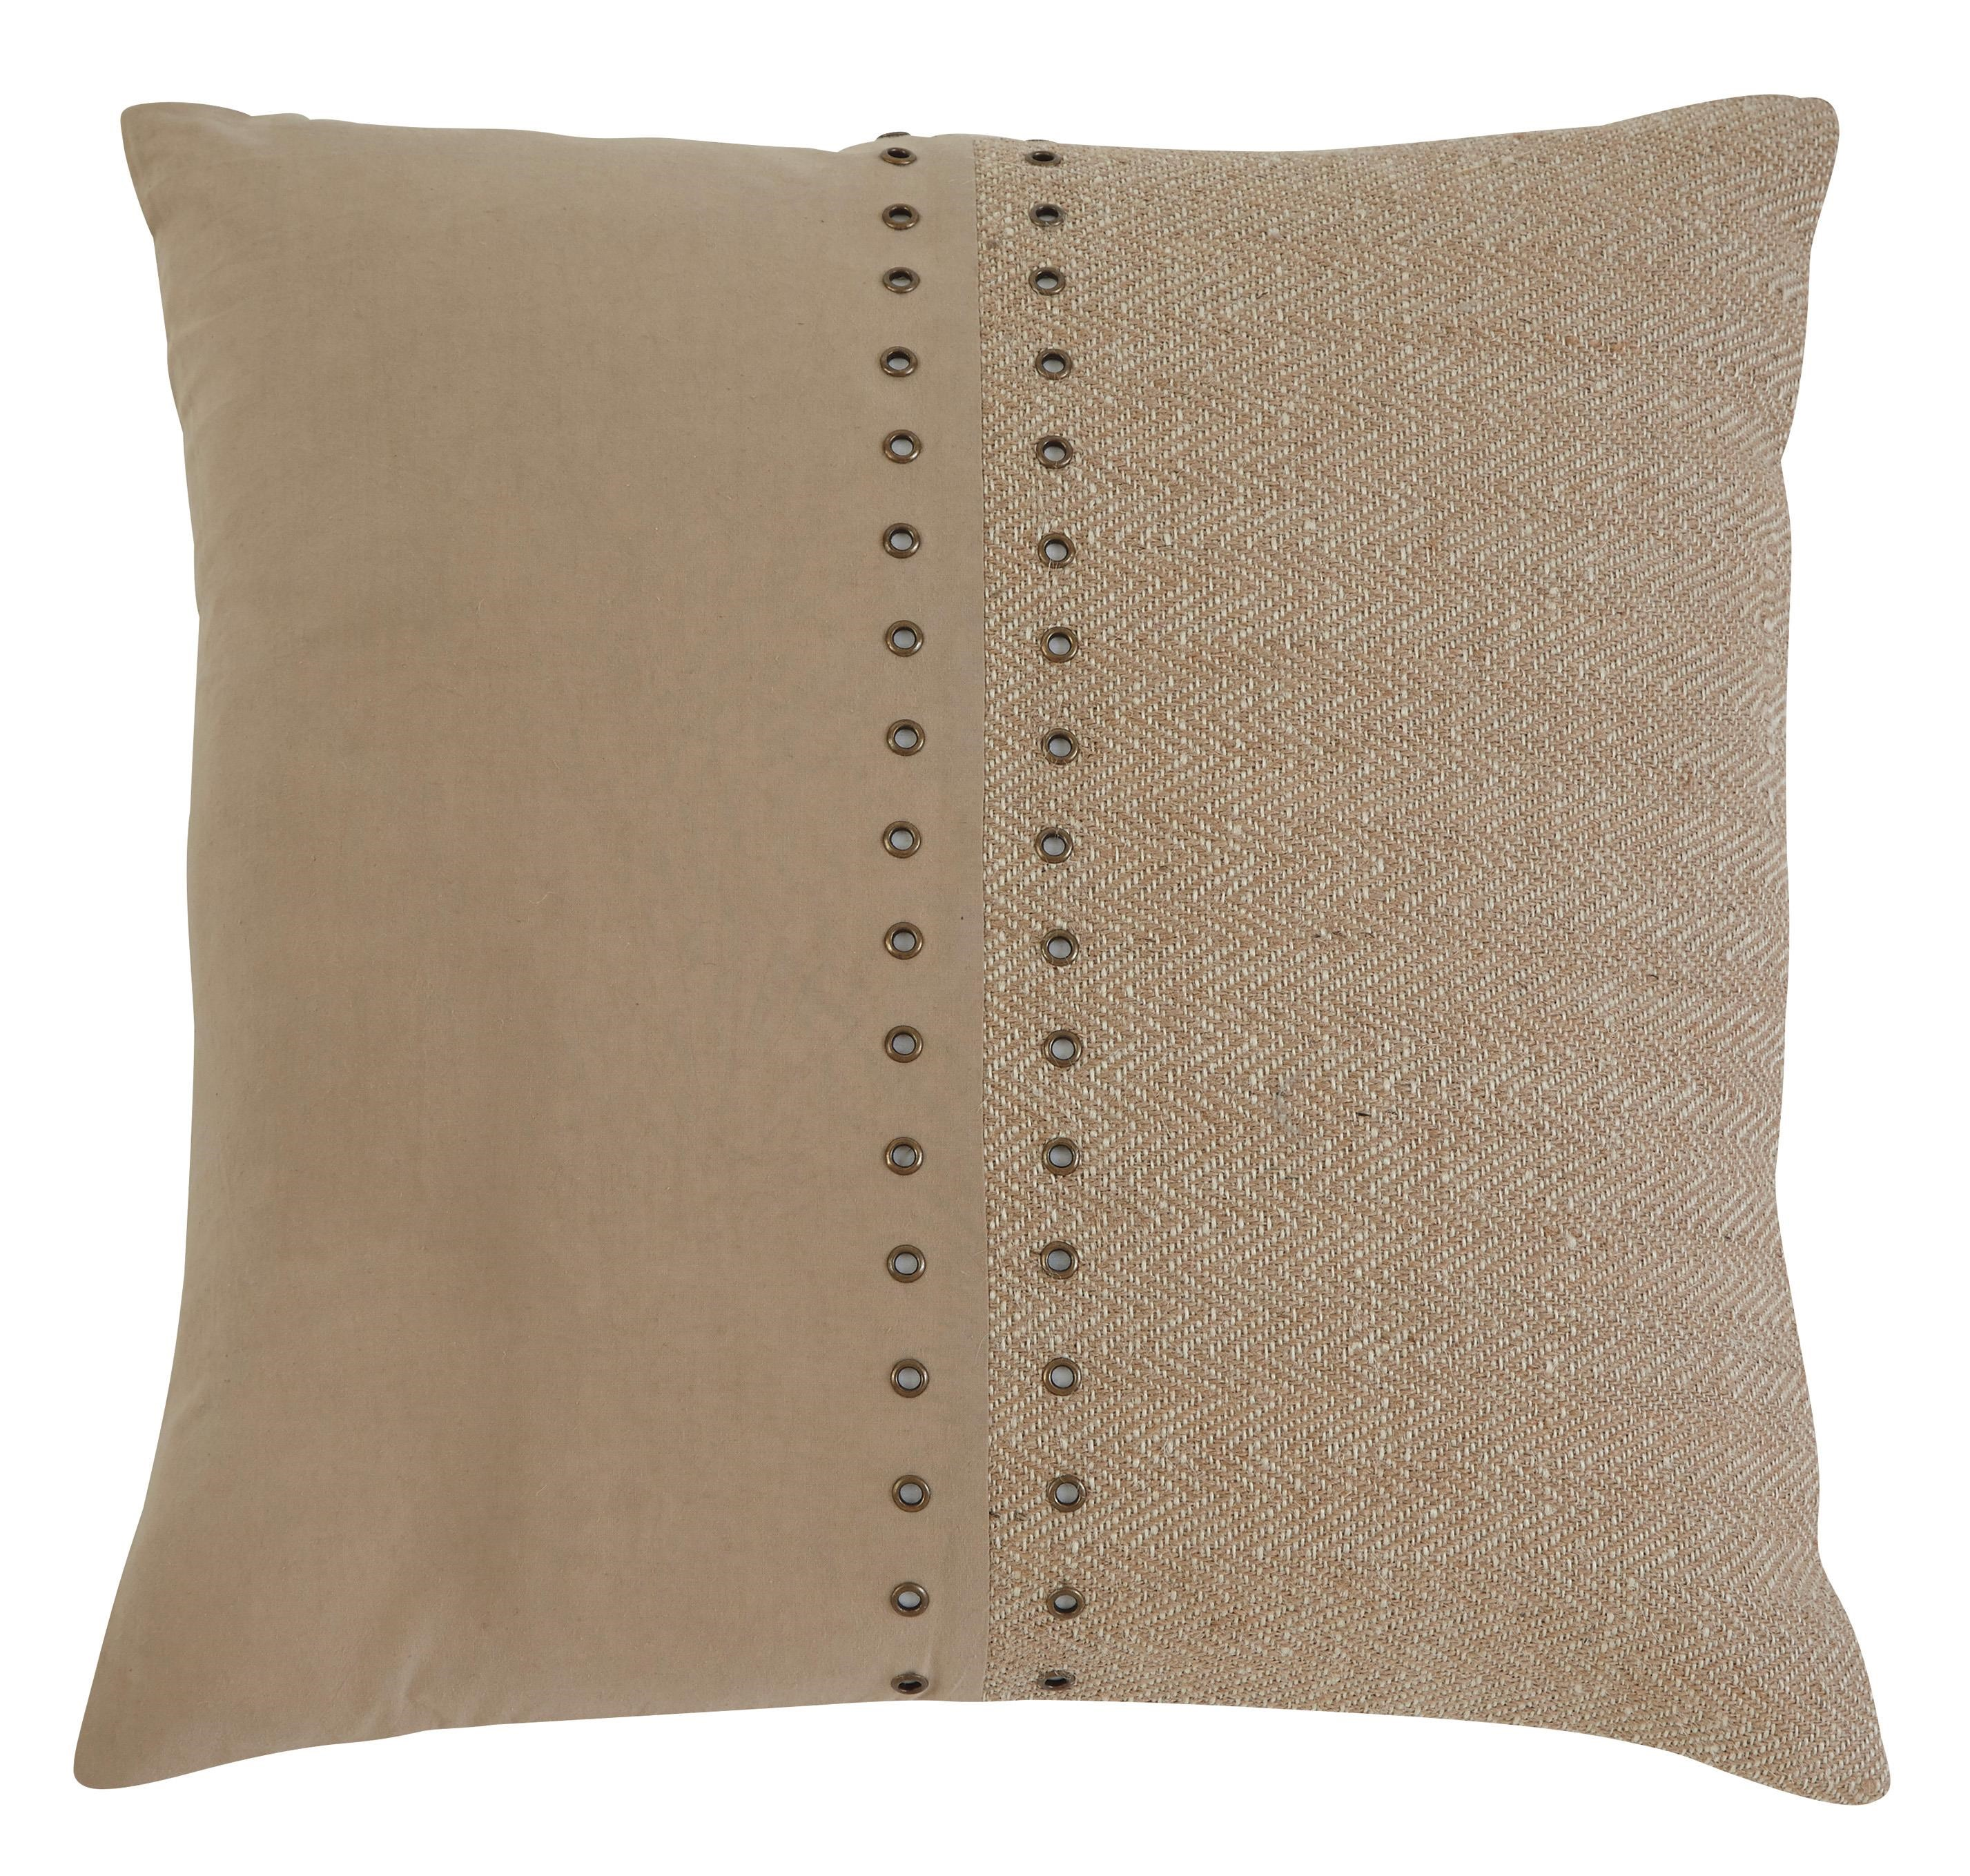 Signature Design by Ashley Furniture Pillows Textured